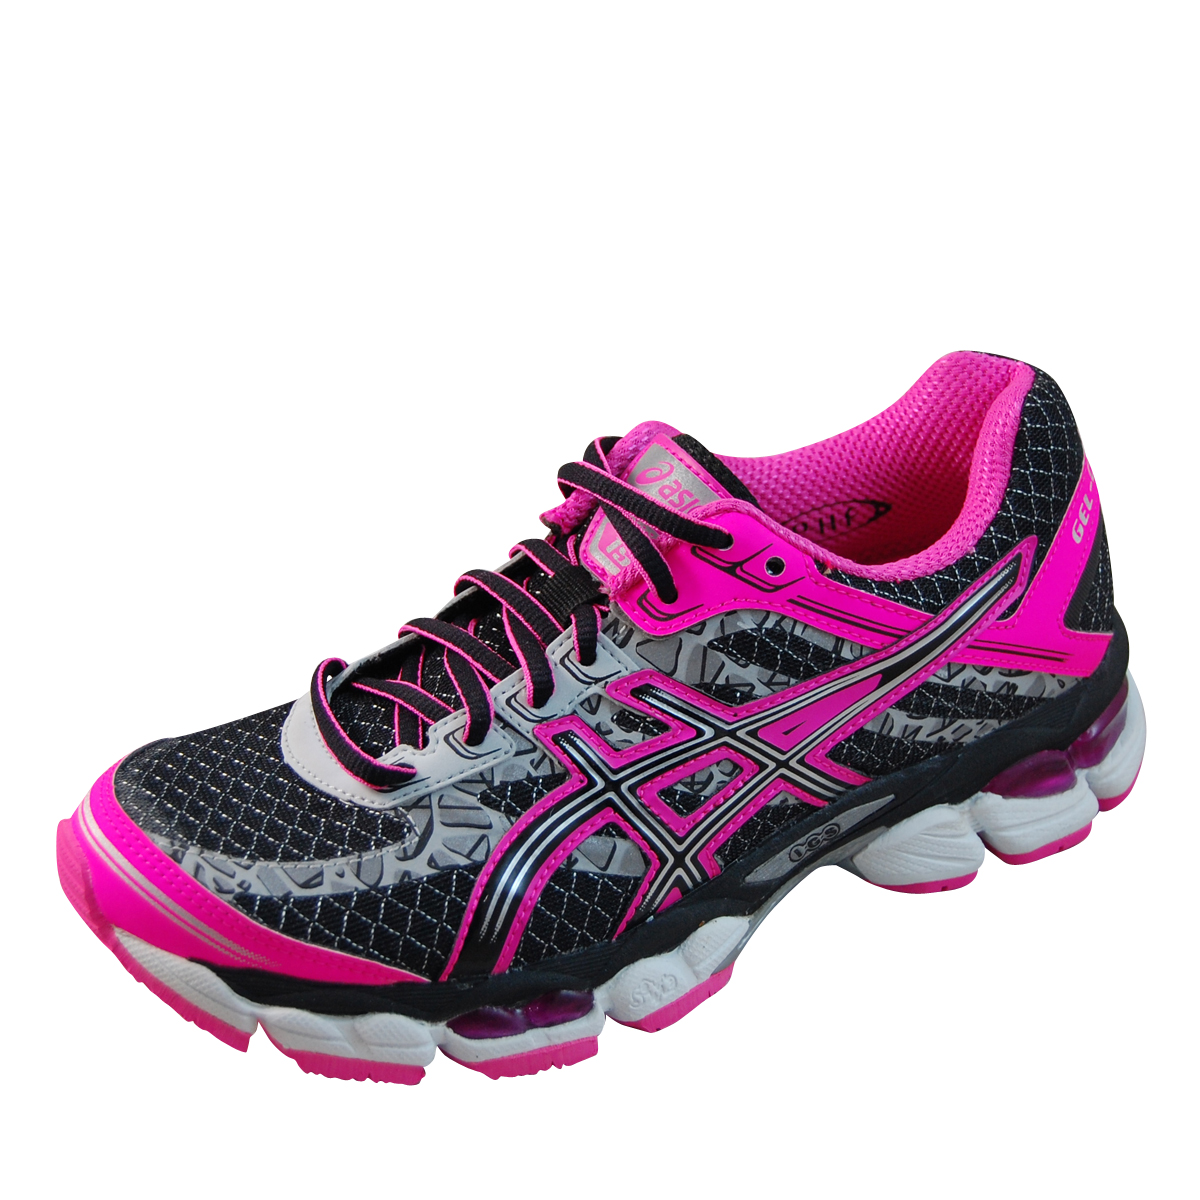 asics womens gel cumulus 15 lite show pink running shoes t3d5n 9099 ebay. Black Bedroom Furniture Sets. Home Design Ideas